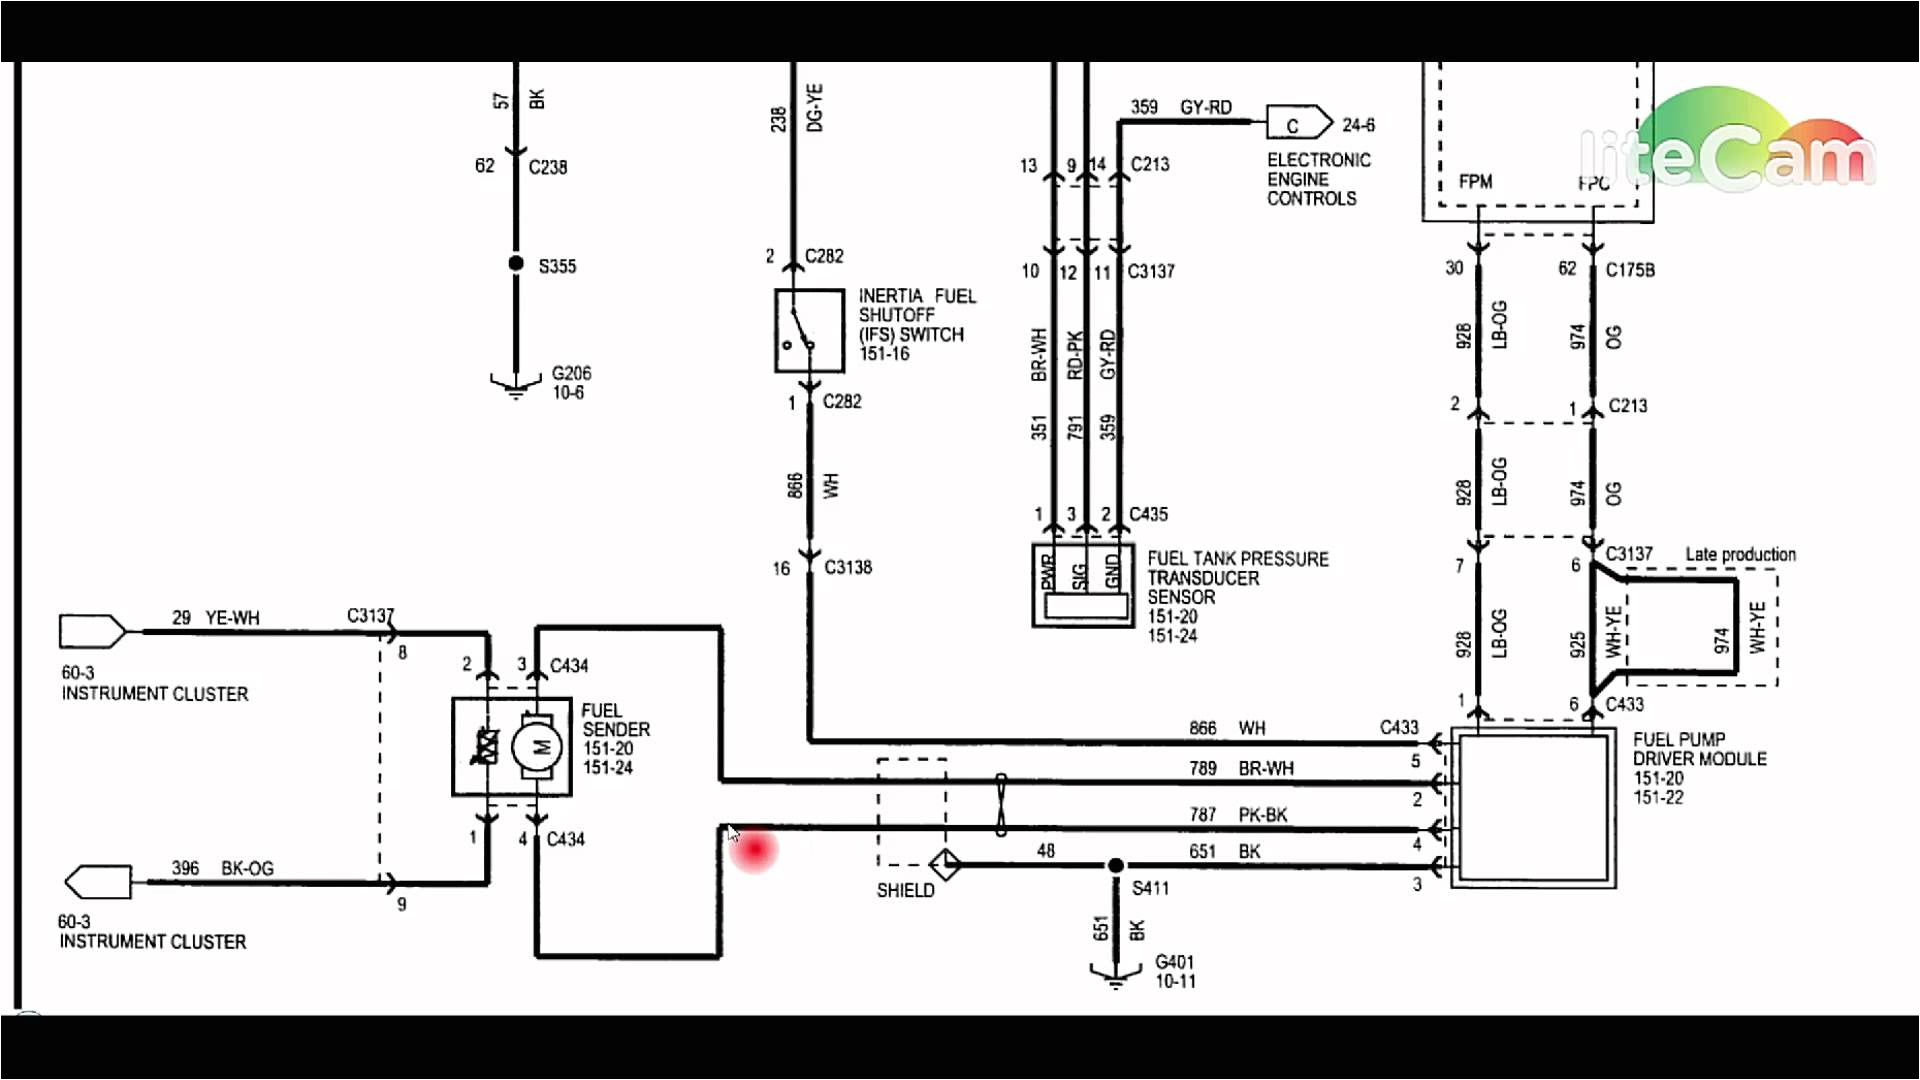 1998 ford f 150 wiring diagram wiring diagram name 1998 ford f 150 wiring diagram wiring